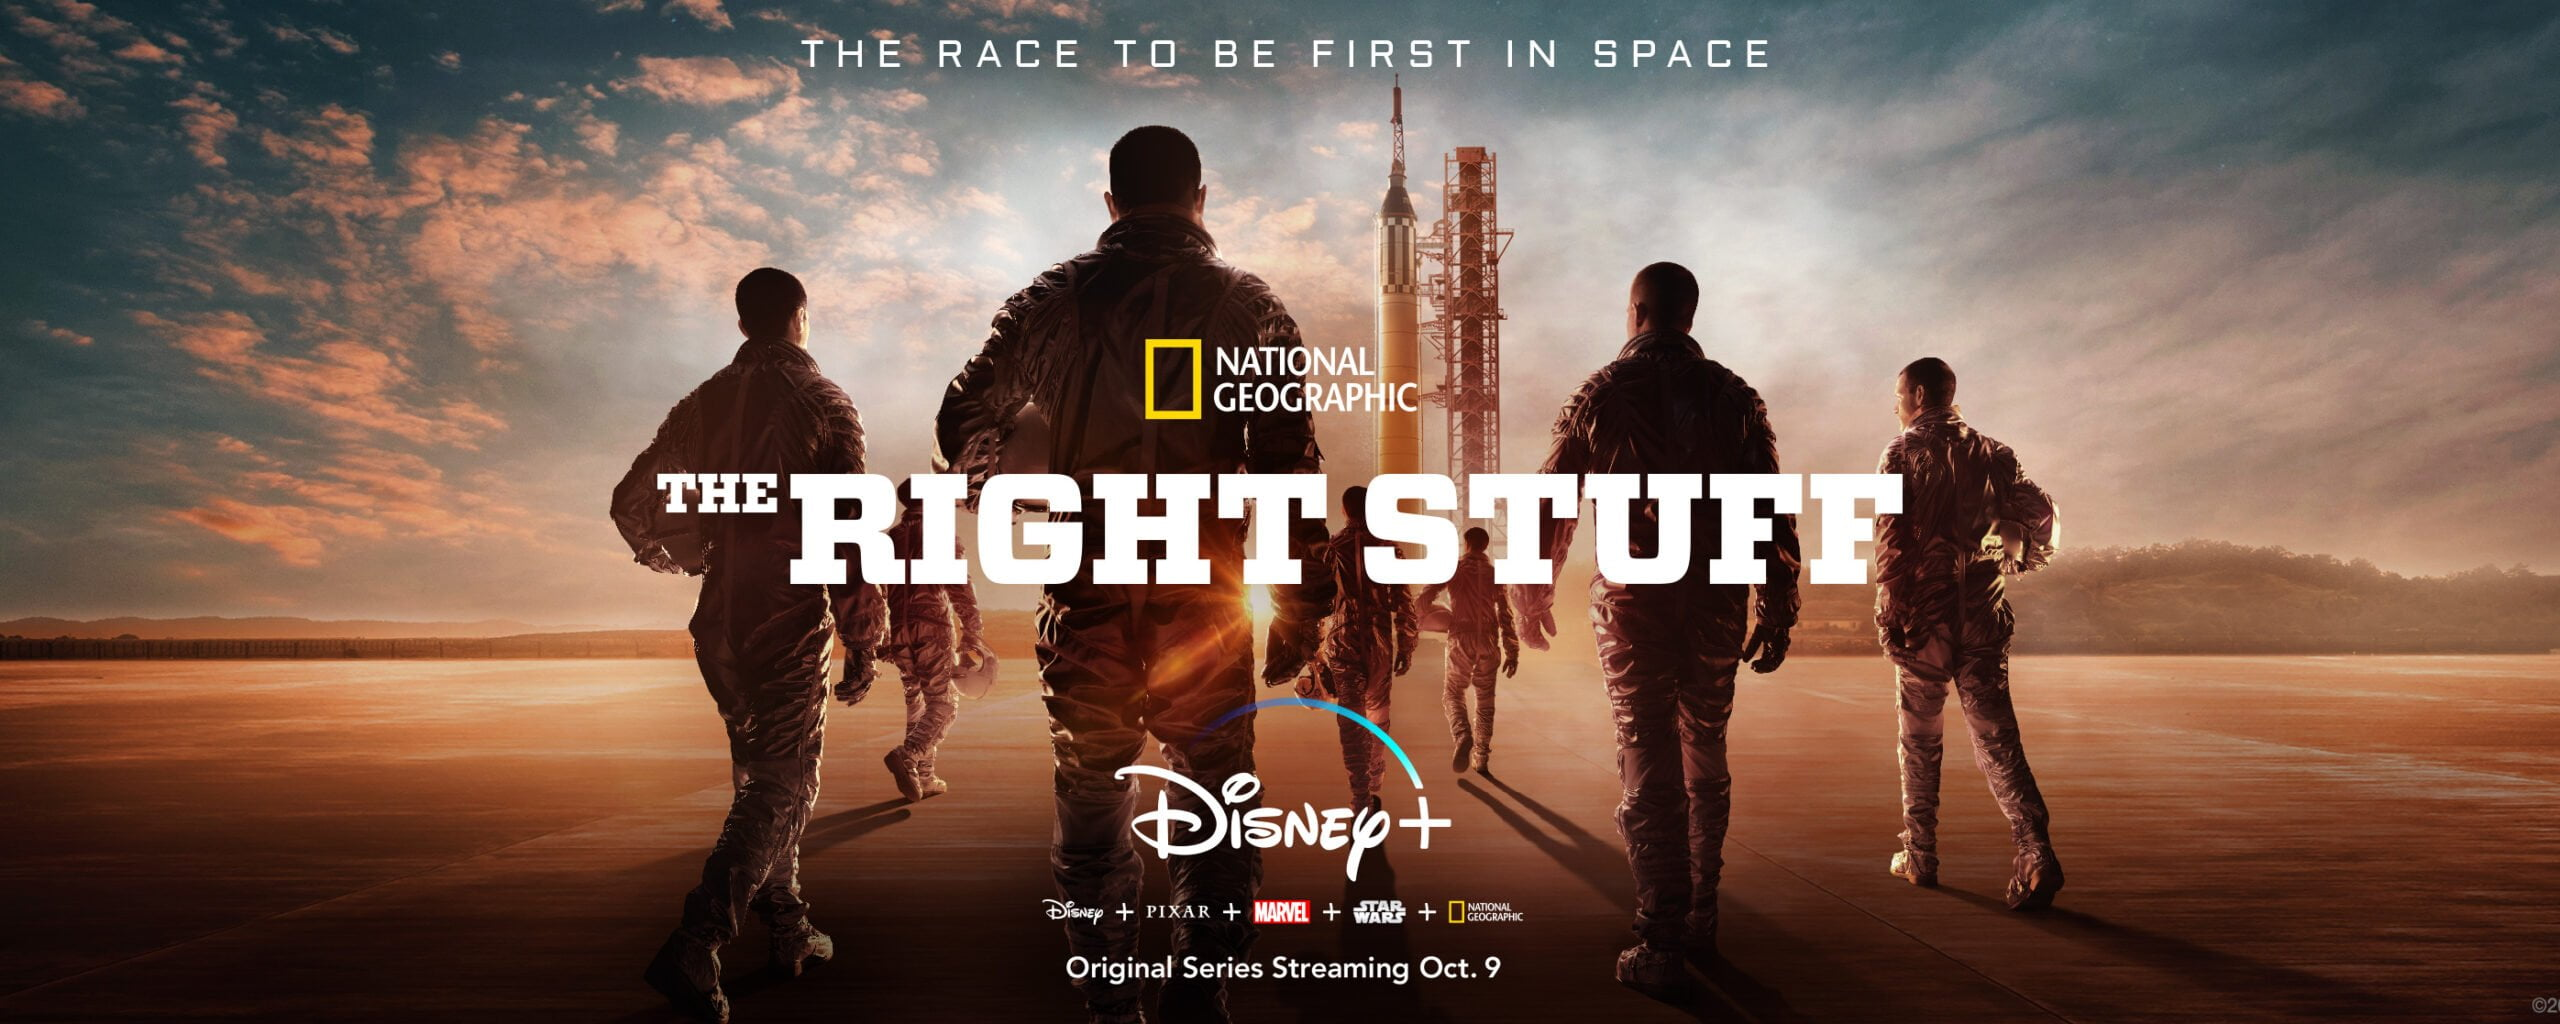 therightstuff hotstar scaled